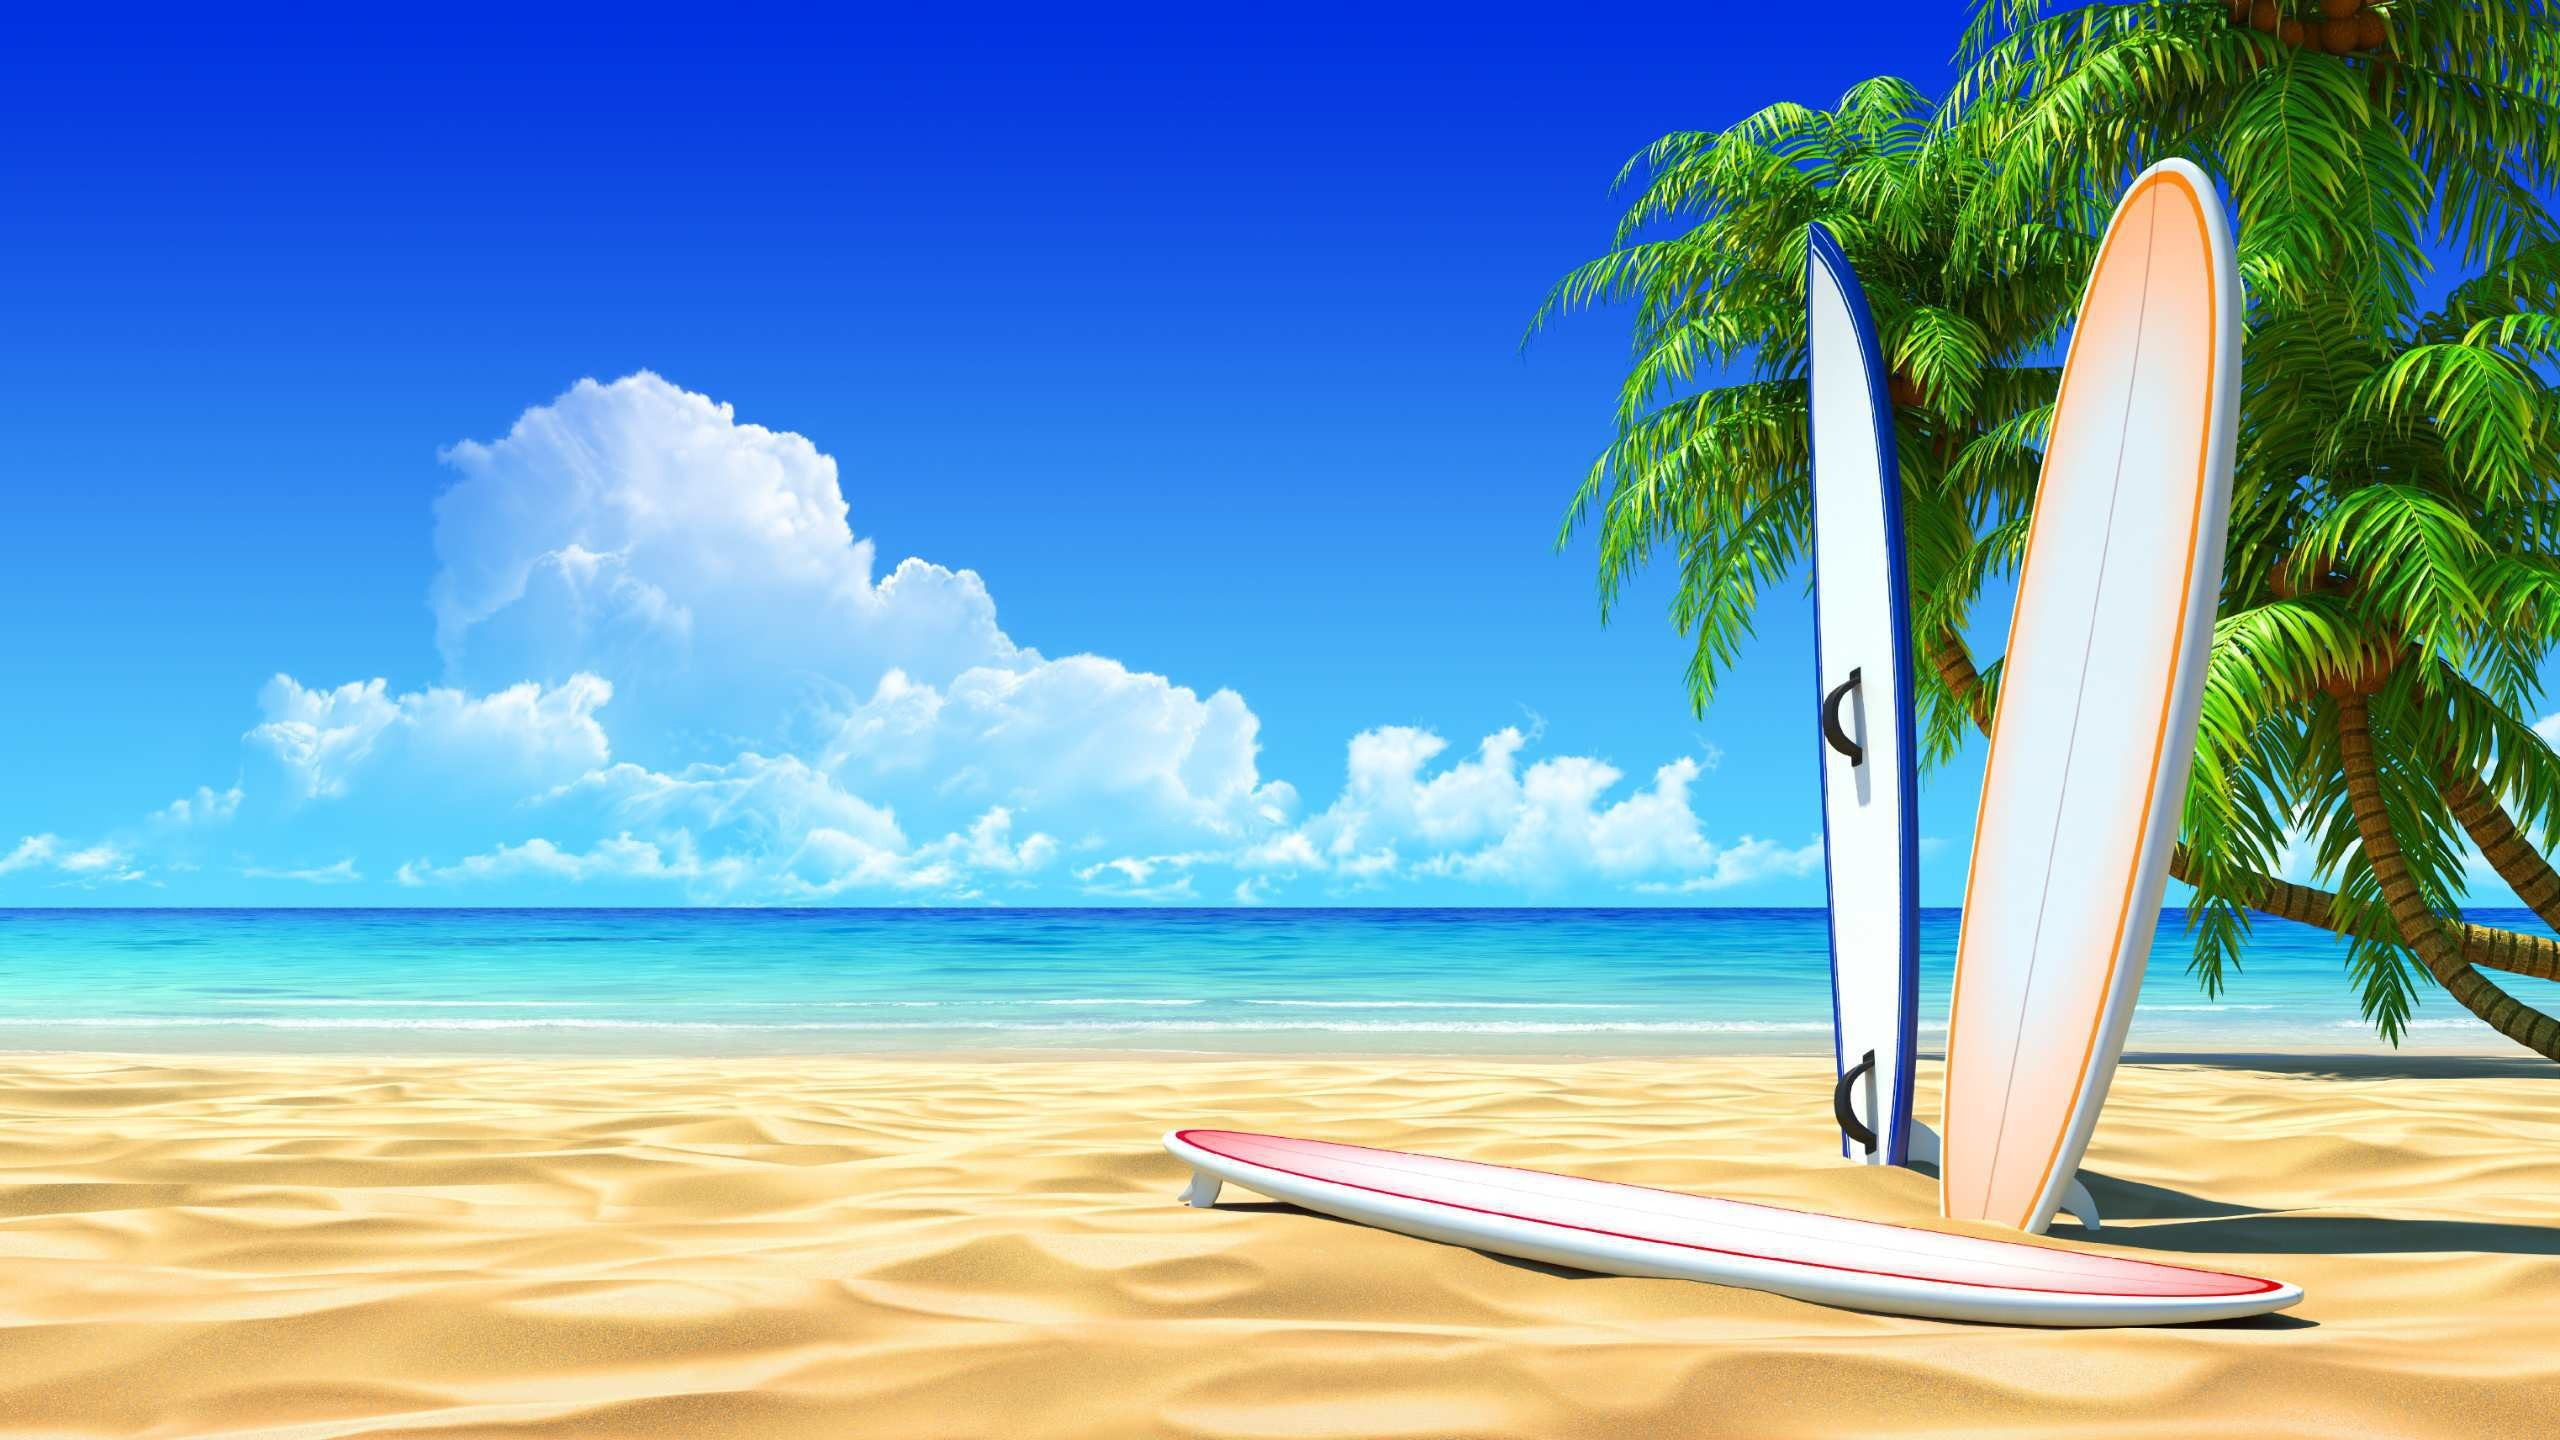 surfing board wallpapers and screensavers | walljpeg.com